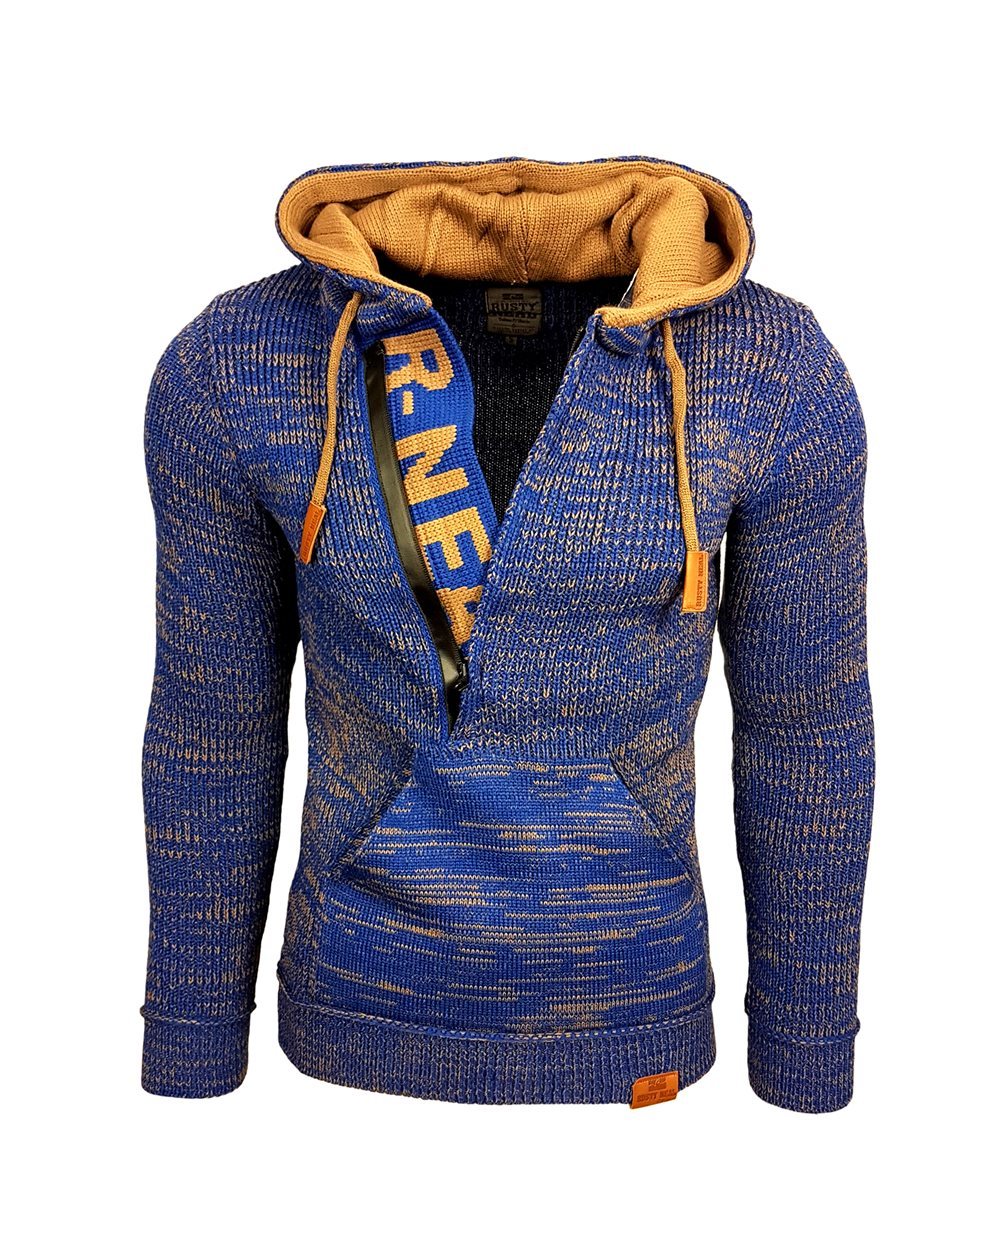 Rusty Neal - Pullover Homme a Capuche Avec Fermeture a Zip Pull Hiver Chiner Tricot Grosse Maille Cordon De Serrage 13277